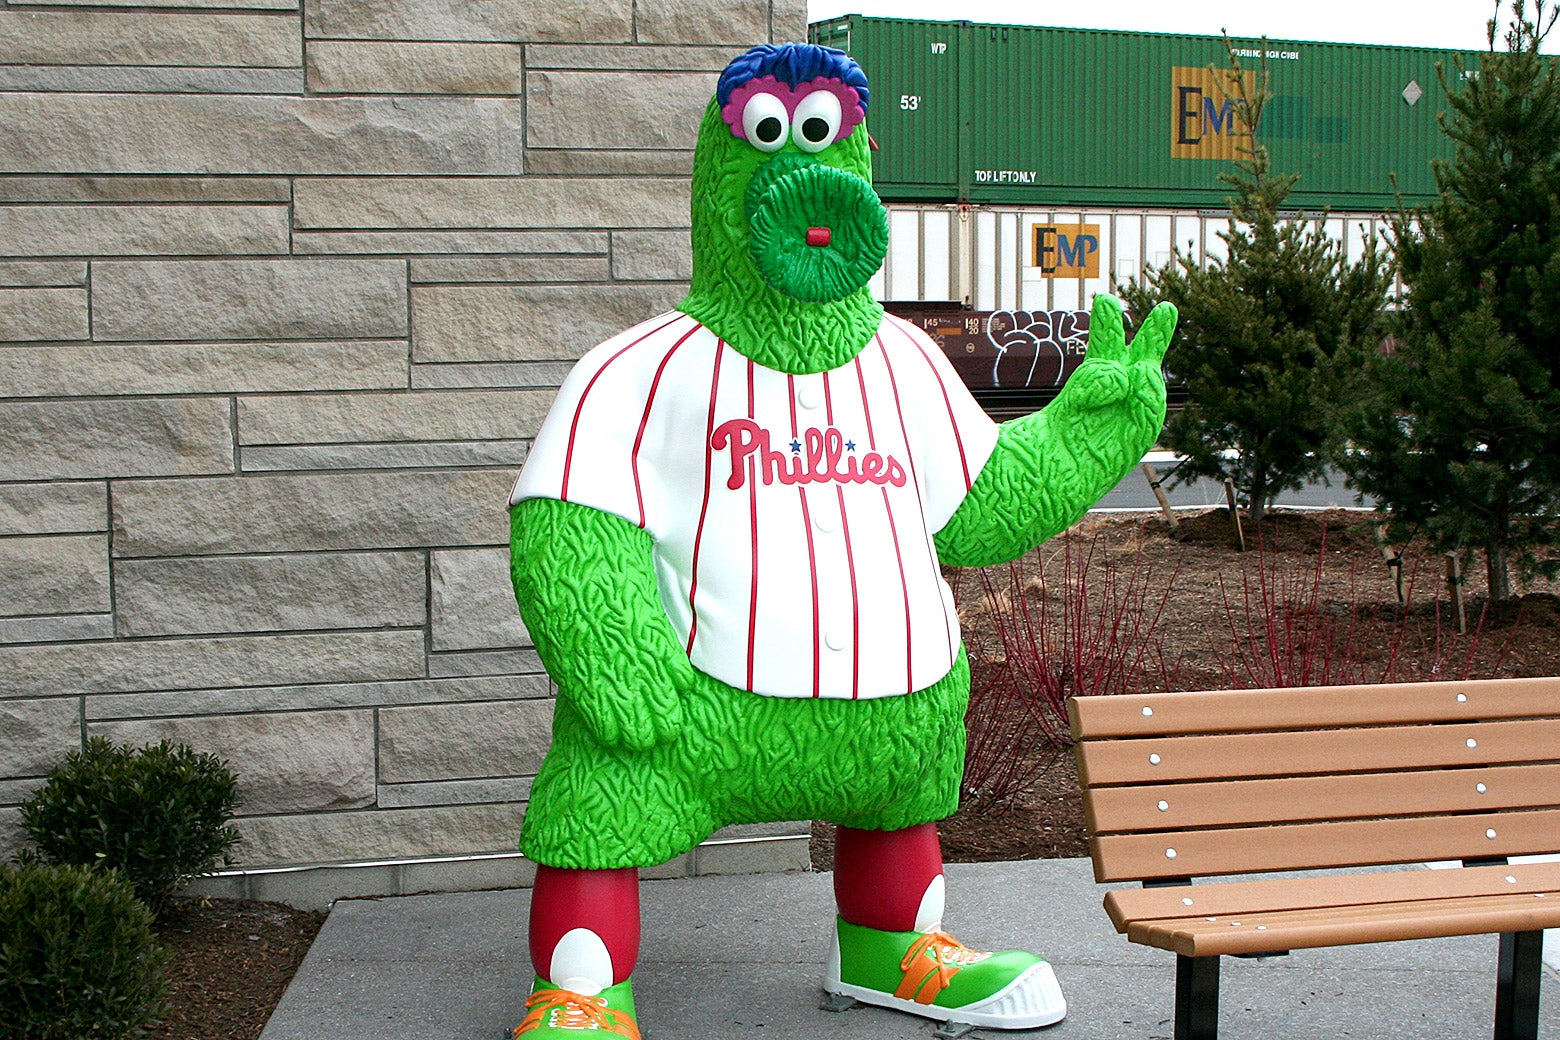 A statue of the Philly Phanatic.